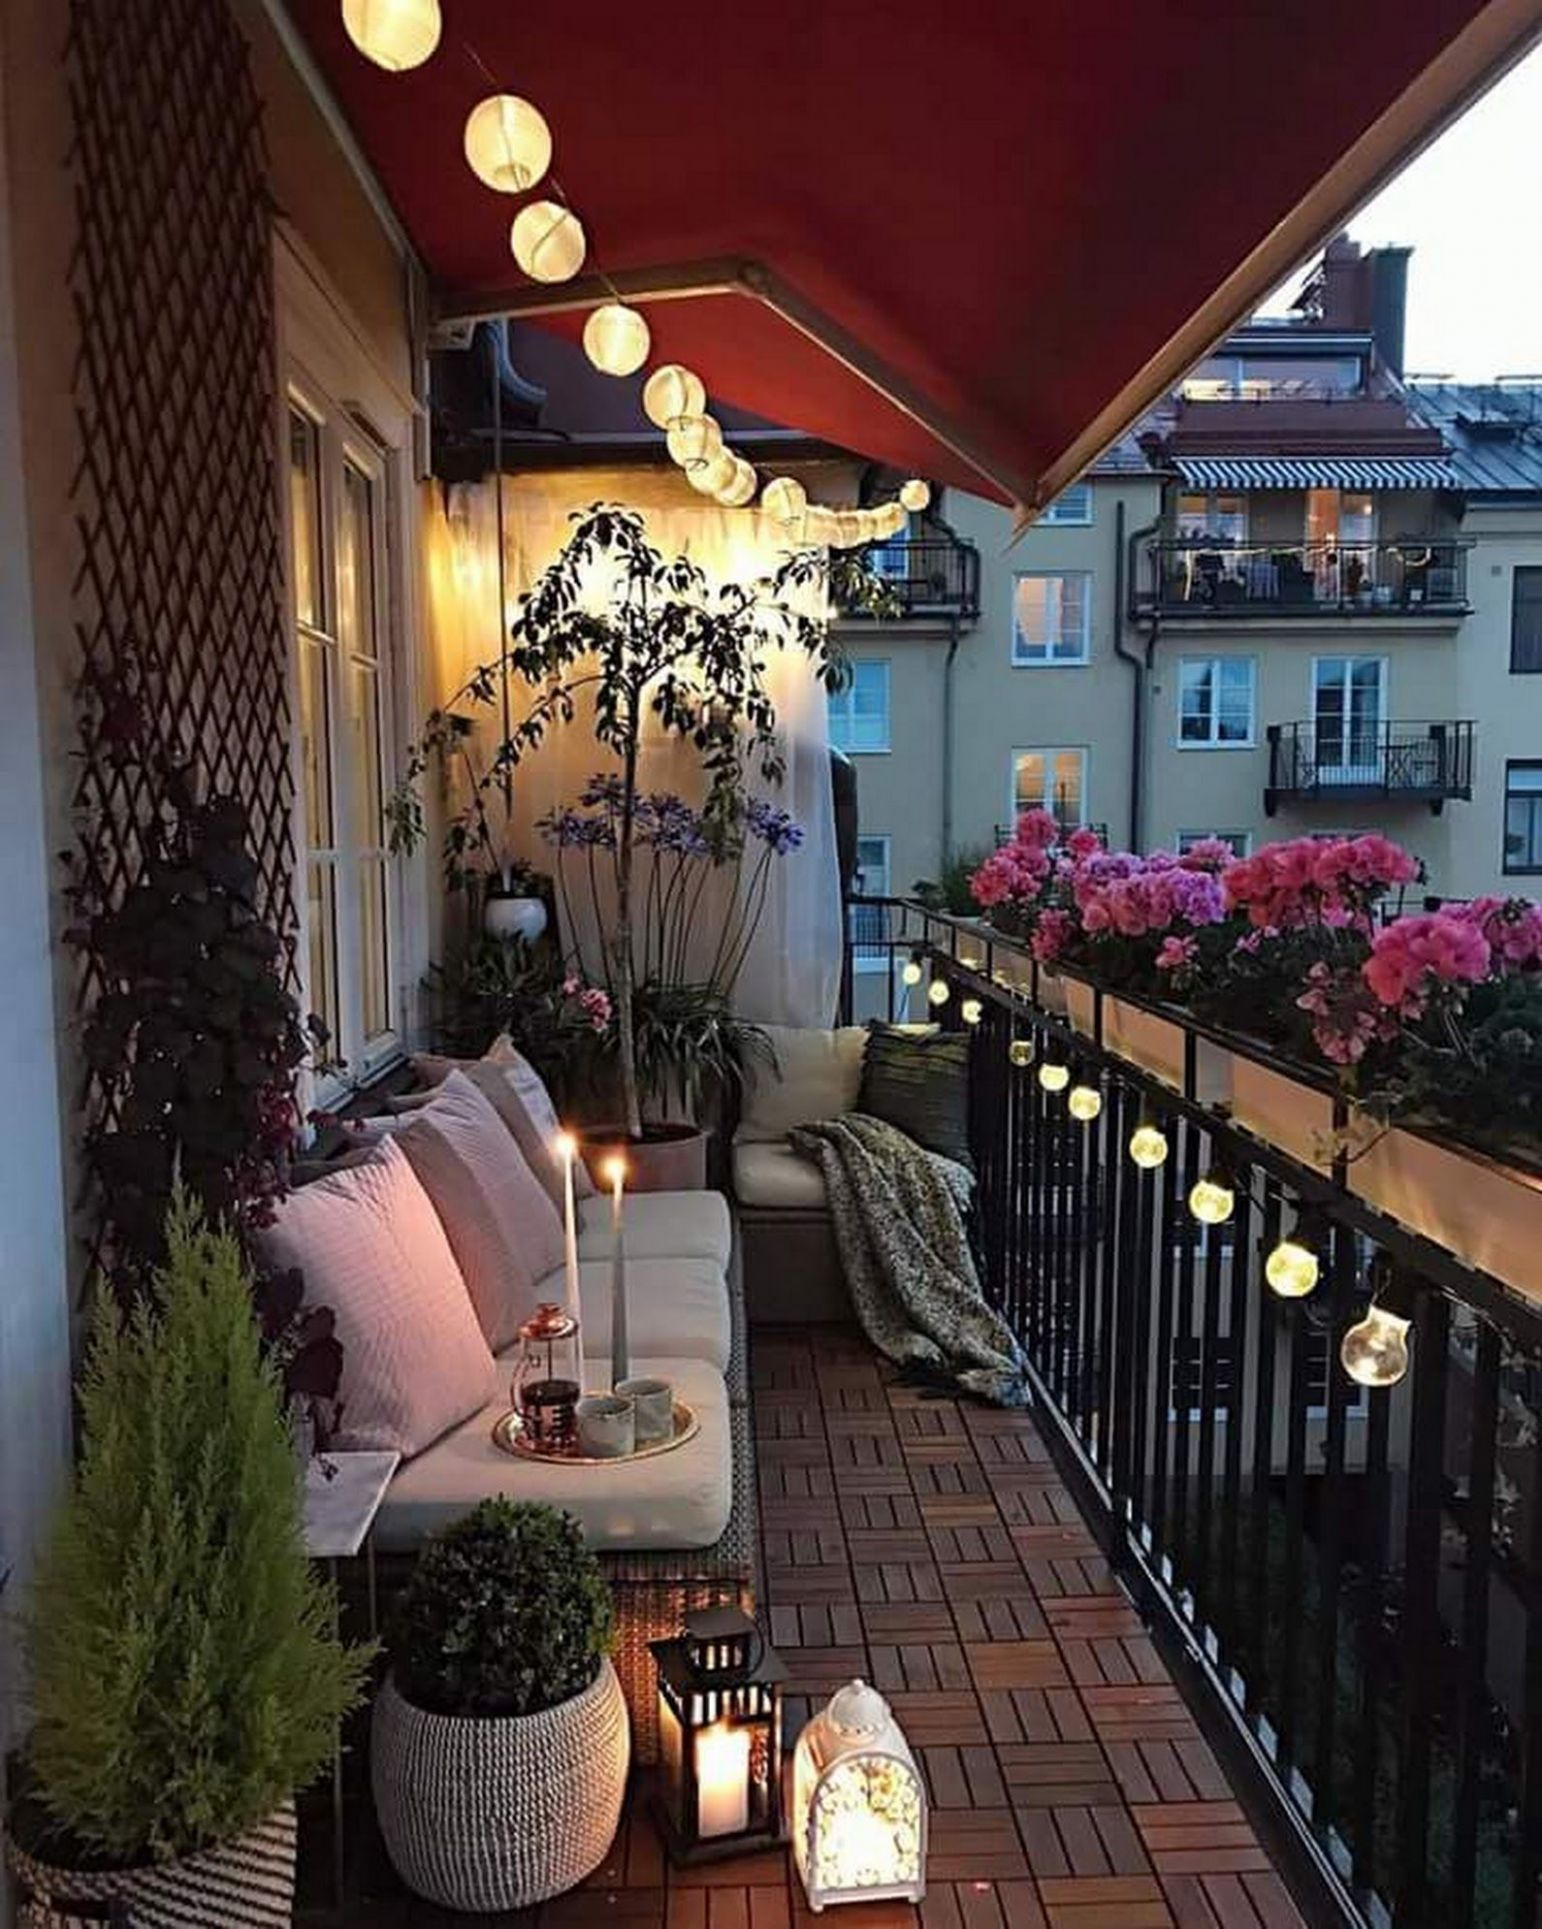 The Best Decorated Small Outdoor Balconies on Pinterest | Balkon ..